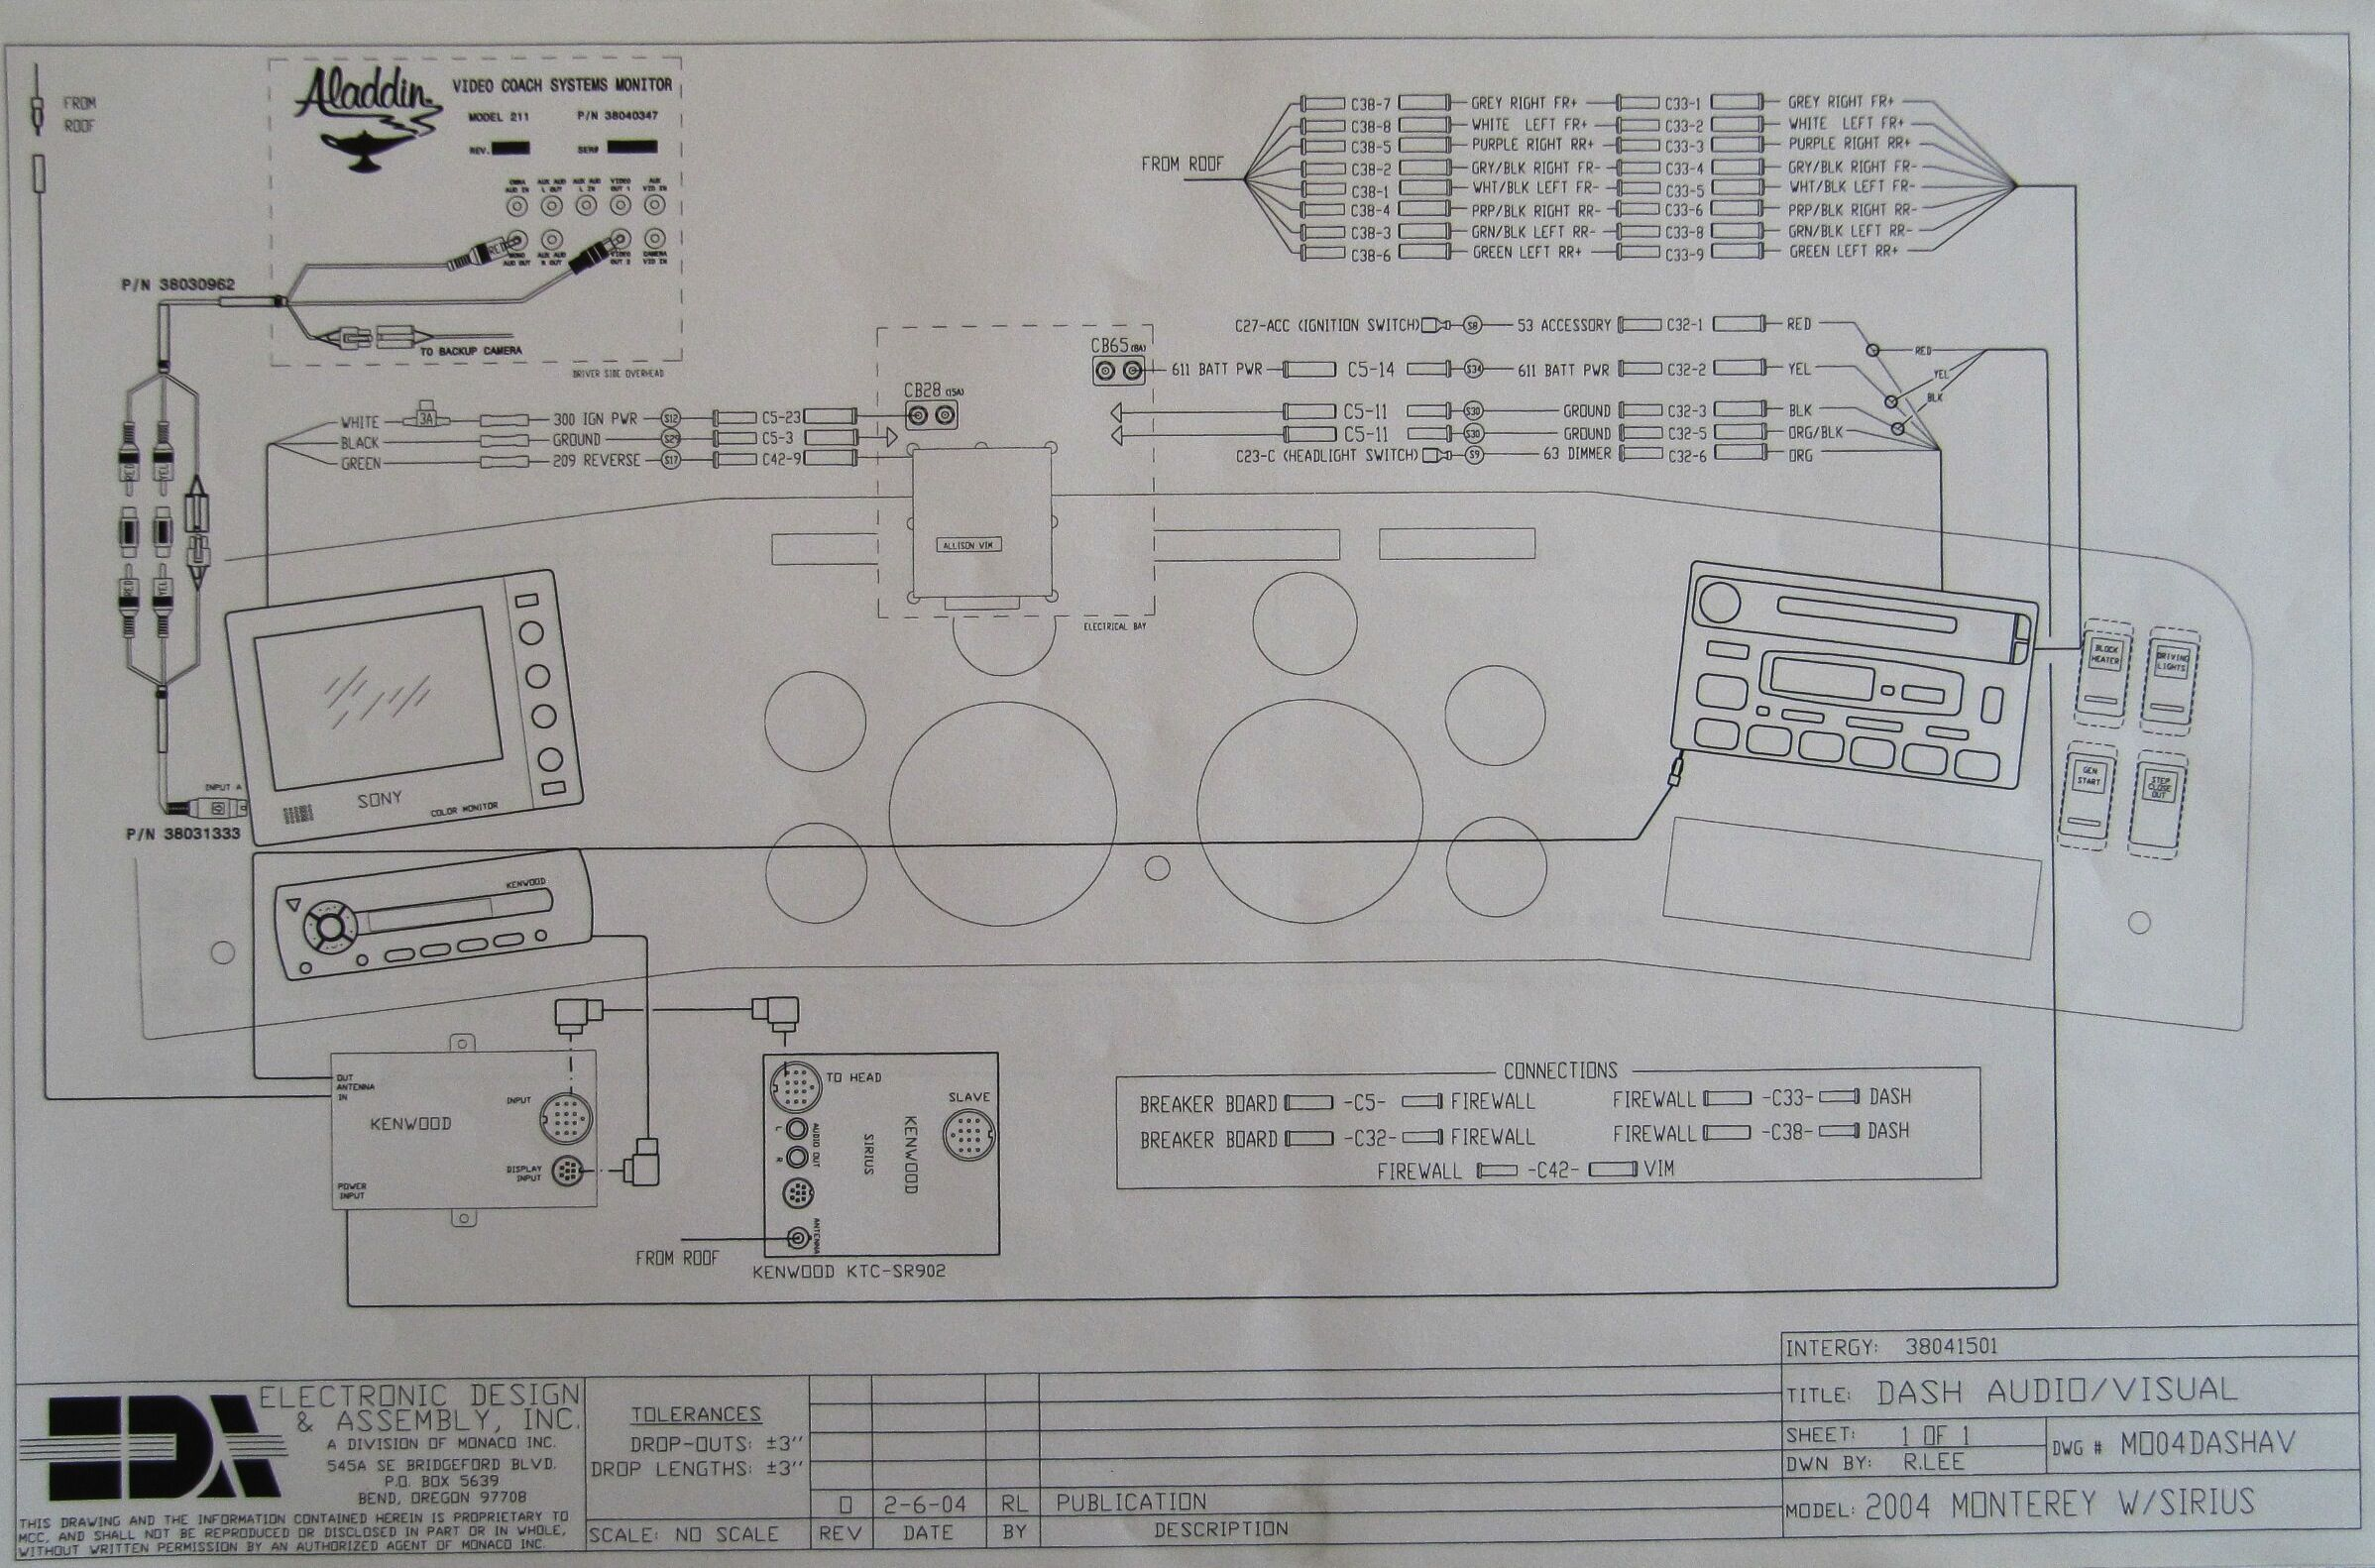 Beaver Motorhome Wiring Diagram - Peugeot 206 Engine Fuse Box  sonycdx-wirings.au-delice-limousin.fr | Beaver Motorhome Wiring Diagram |  | Bege Wiring Diagram - Bege Wiring Diagram Full Edition